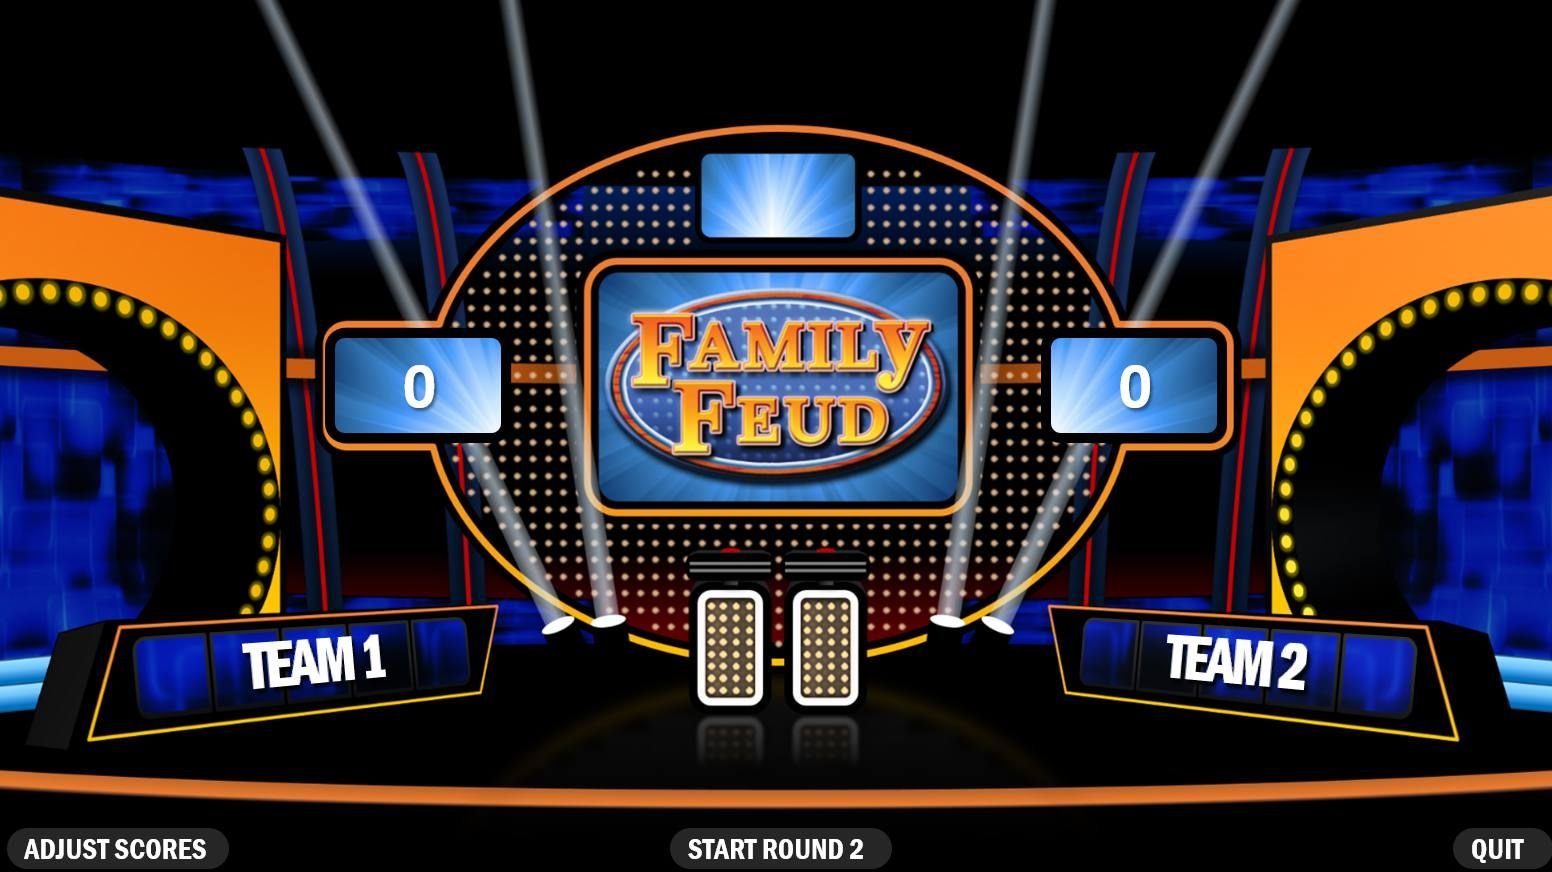 Make Your Own Family Feud Game With These Free Templates Family Feud Game Family Feud Template Family Feud